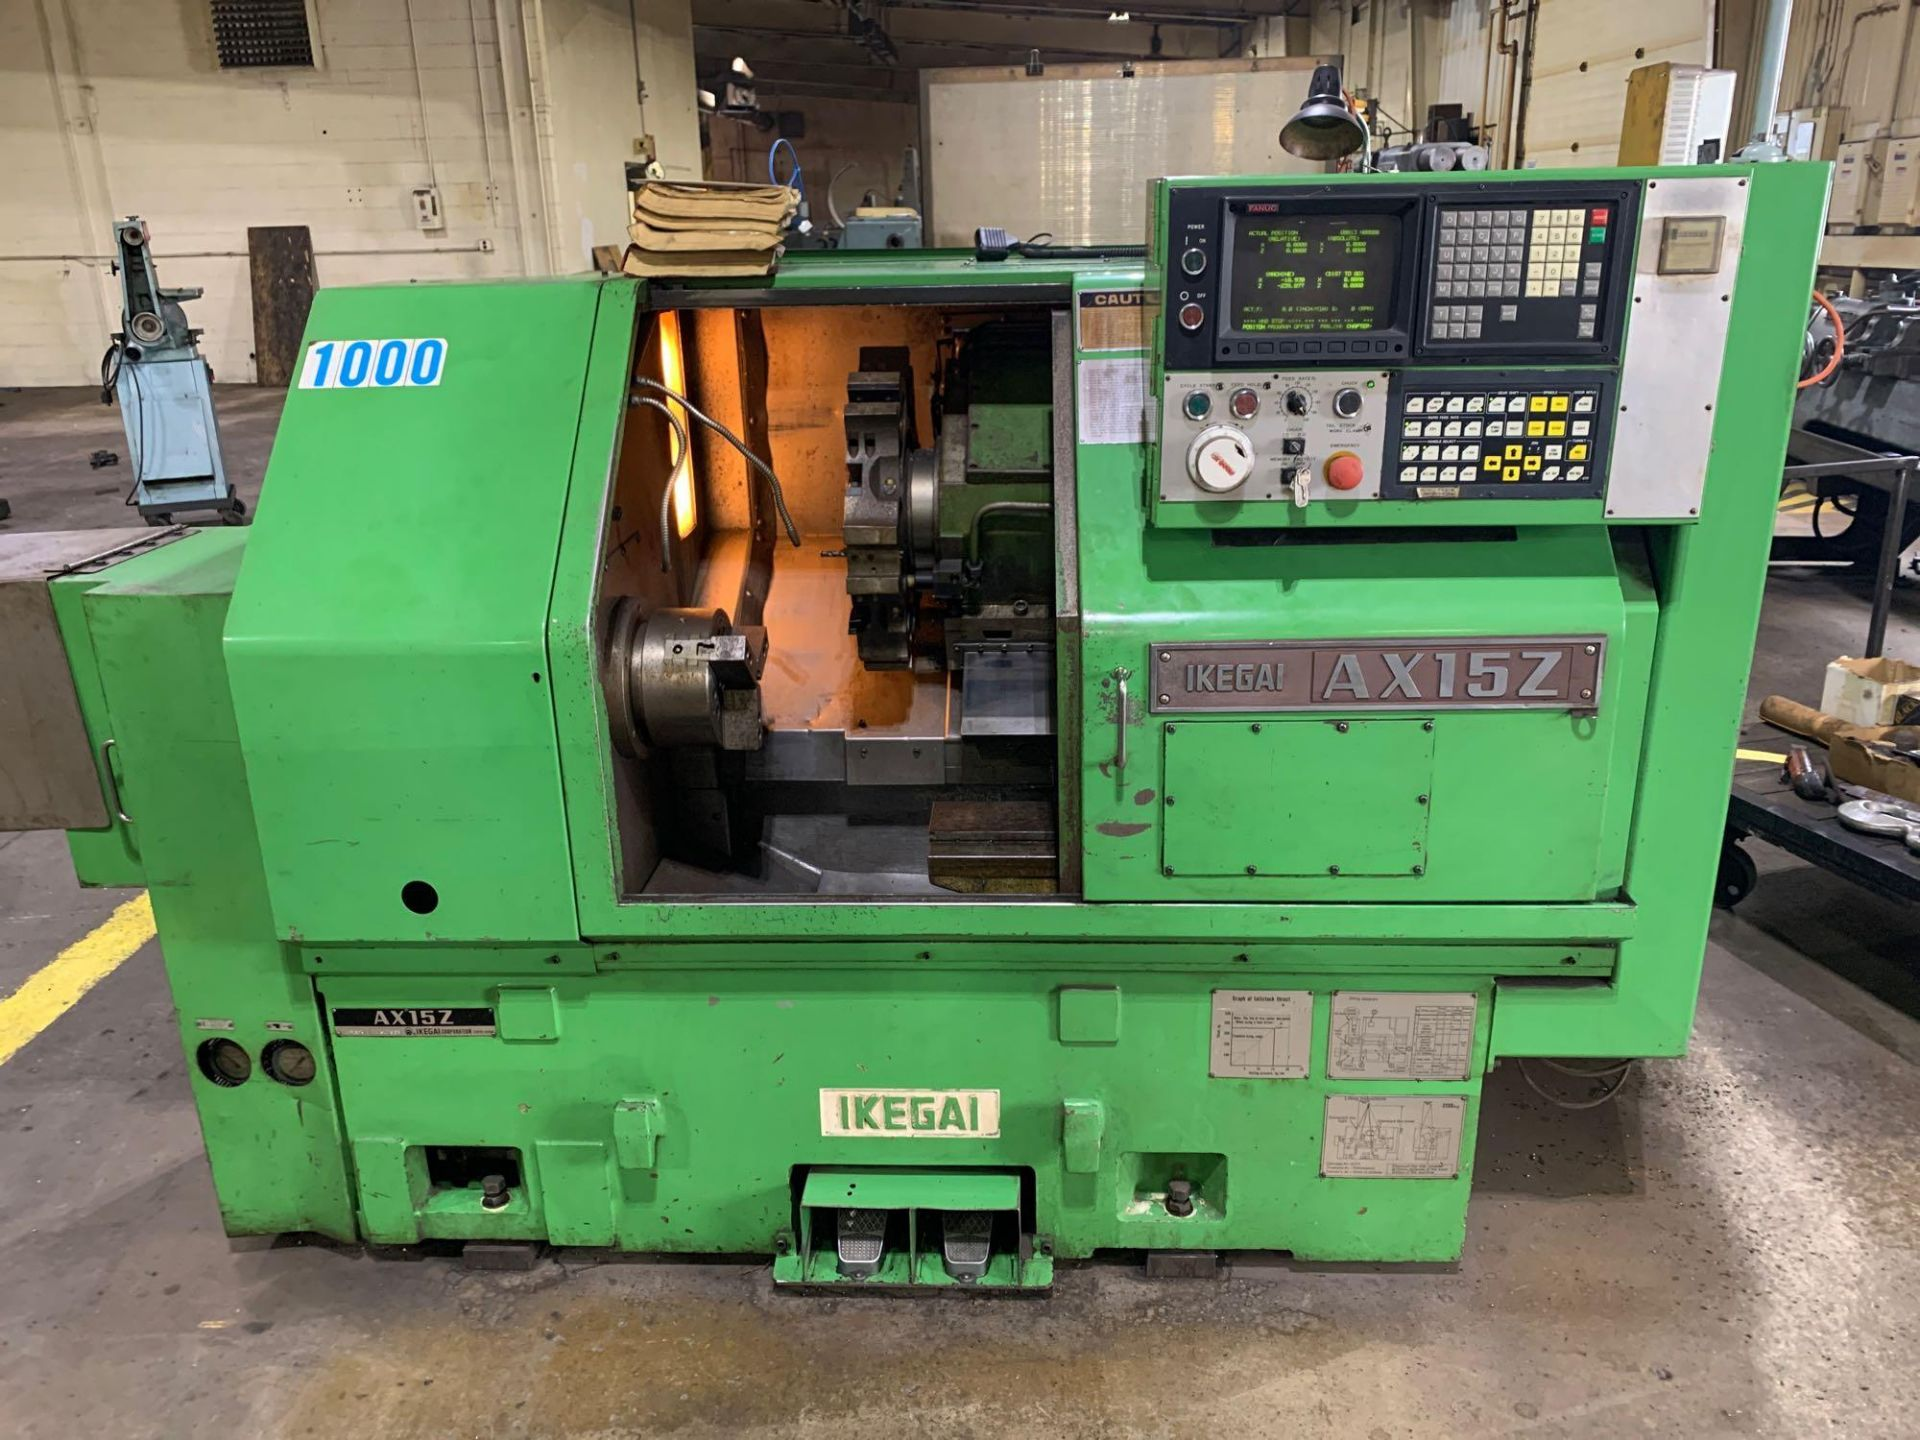 IKEGAI AX-15Z CNC Slant Bed Turning Center Serial Number: 50130V 2-Axis Machine Fanuc 10T Control 12 - Image 4 of 18